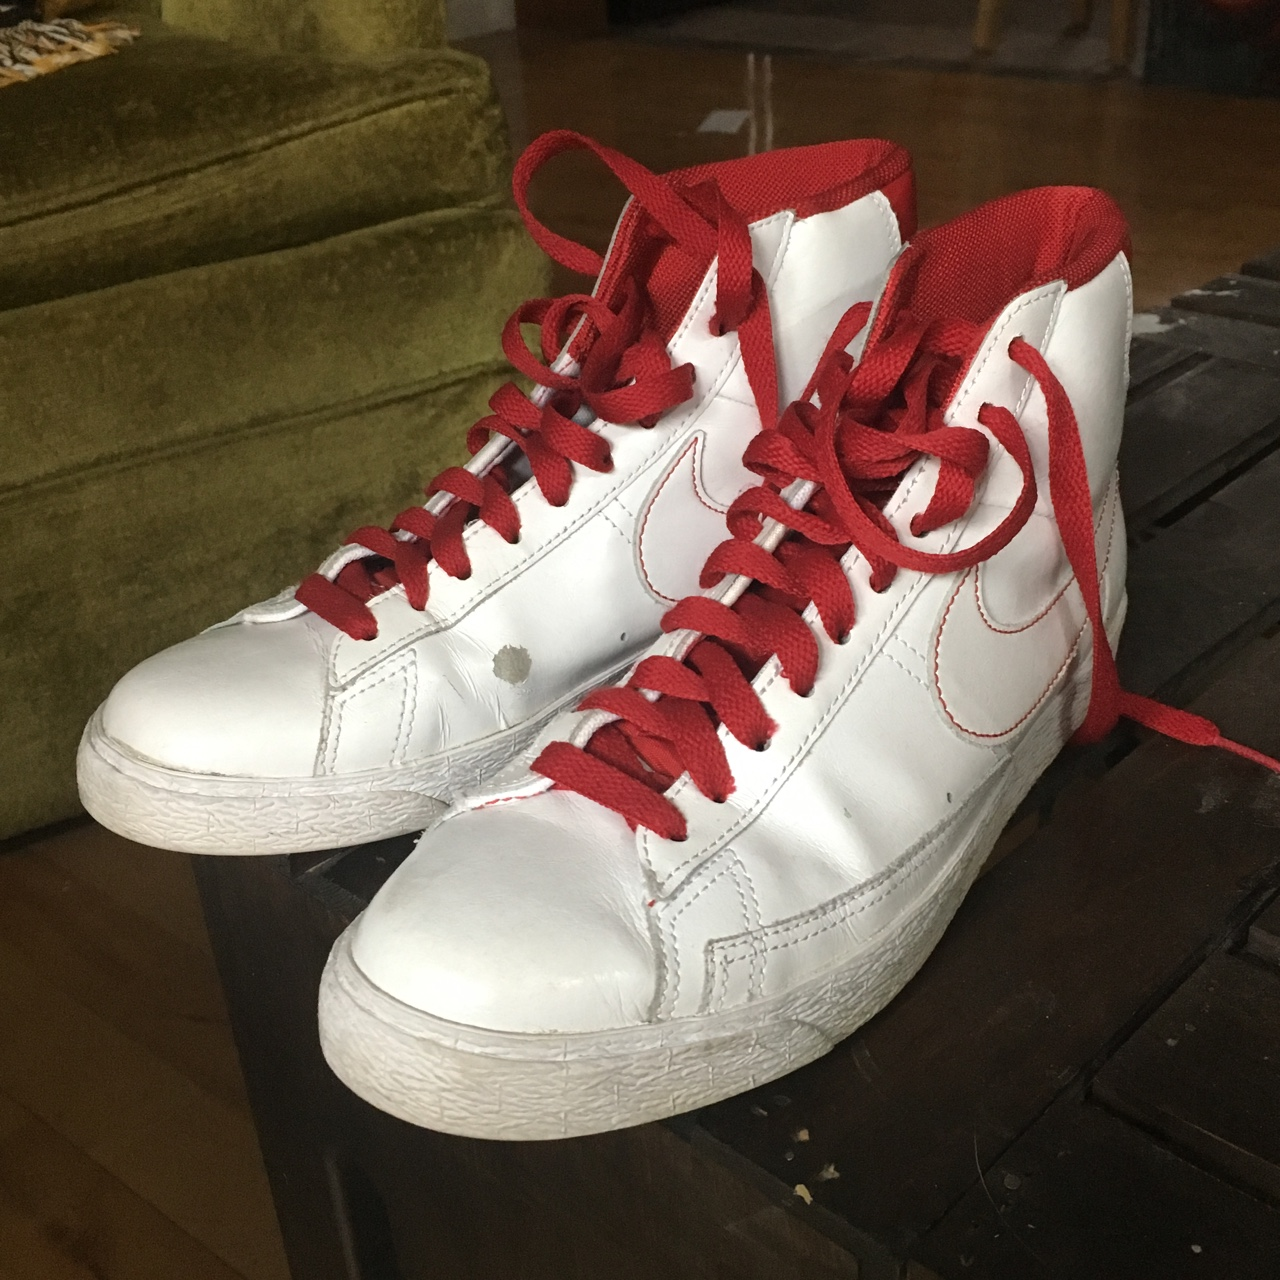 super popular 8d5e2 cb845 Nike Blazer SP High Tops, red/white These shoes are... - Depop